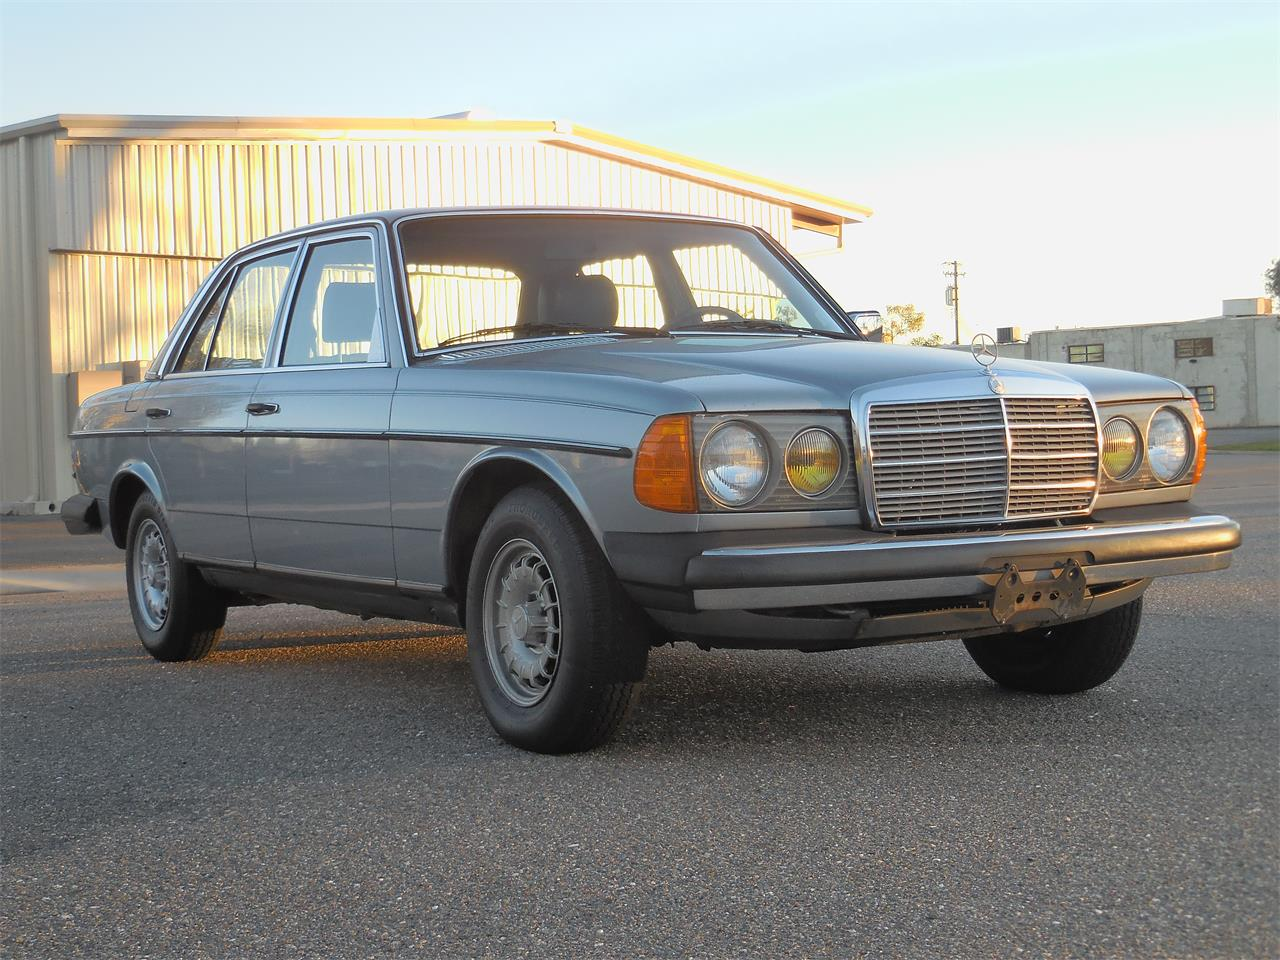 1982 Mercedes-Benz 300D for sale in Anderson, CA – photo 6